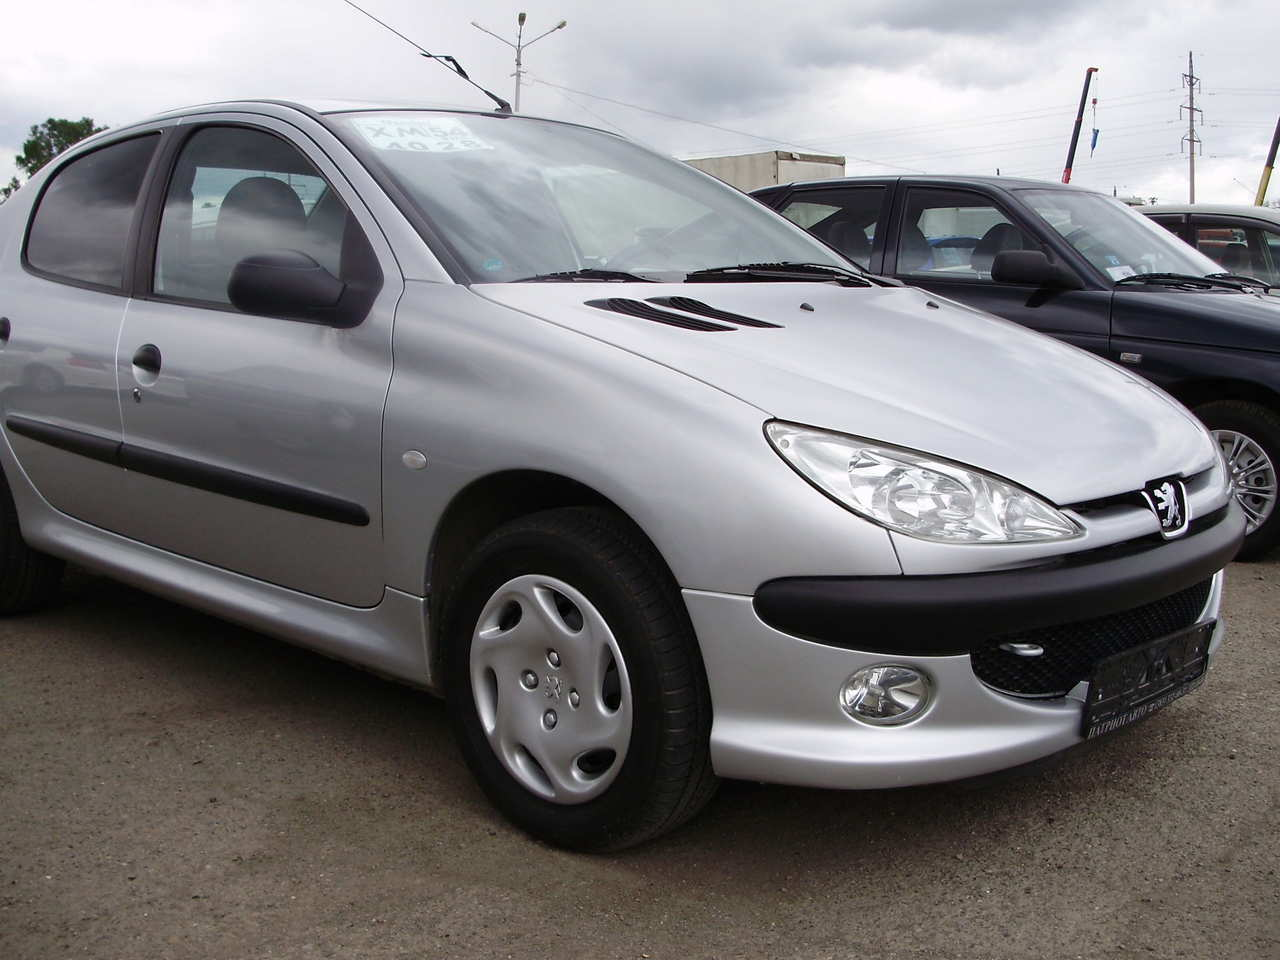 Le Meilleur 2007 Peugeot 206 Sedan Wallpapers 1 4L Gasoline Ff Ce Mois Ci